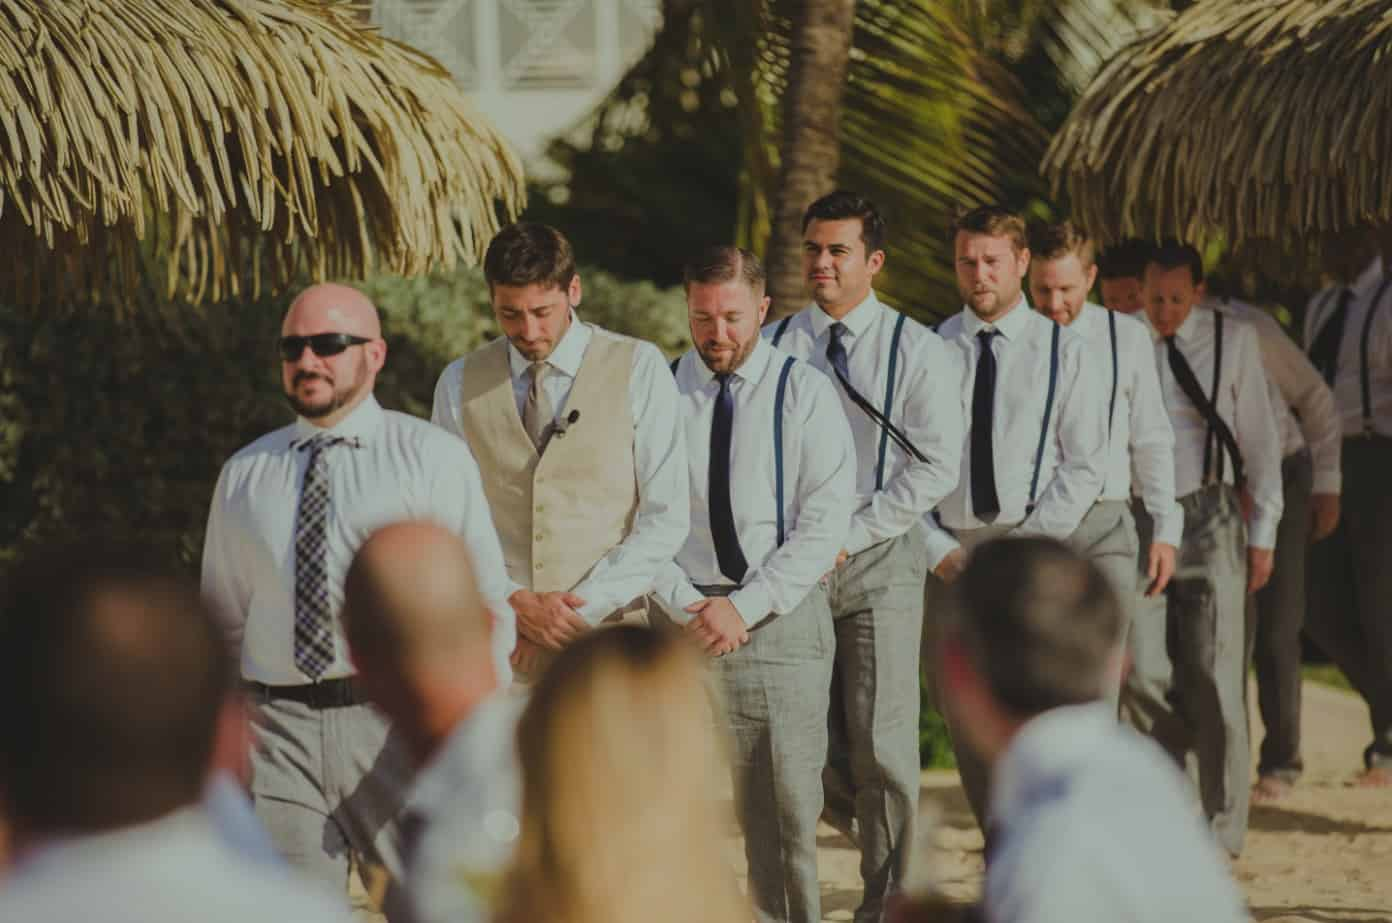 wedding-ceremony-groomsmen-celebrations-ltd-cayman-islands-destination-wedding